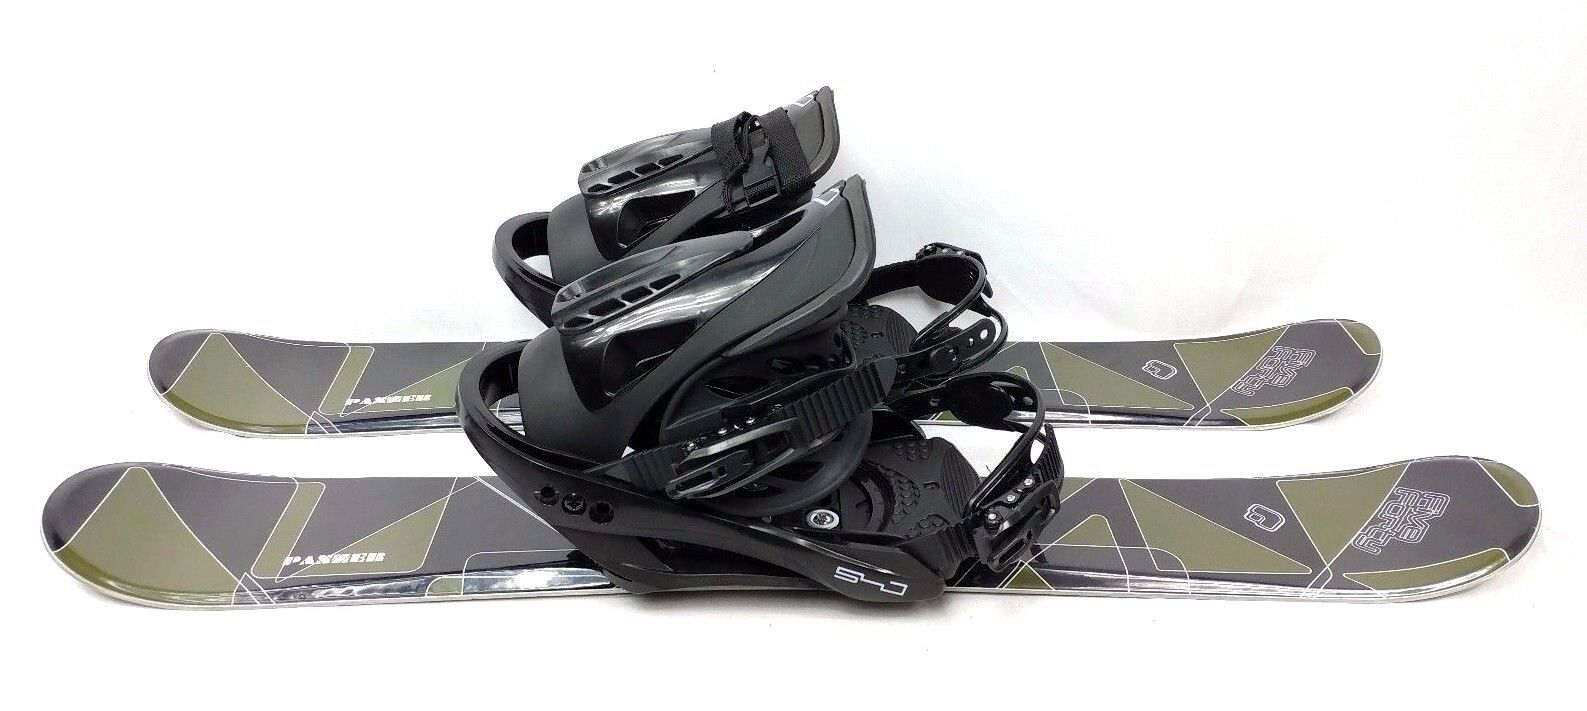 SKIBOARD,Five-Forty, 90cm Panzer, WIDE FAT SnowBlades/DOUBLE RATCHET  Bindings Bindings Bindings 29f03e